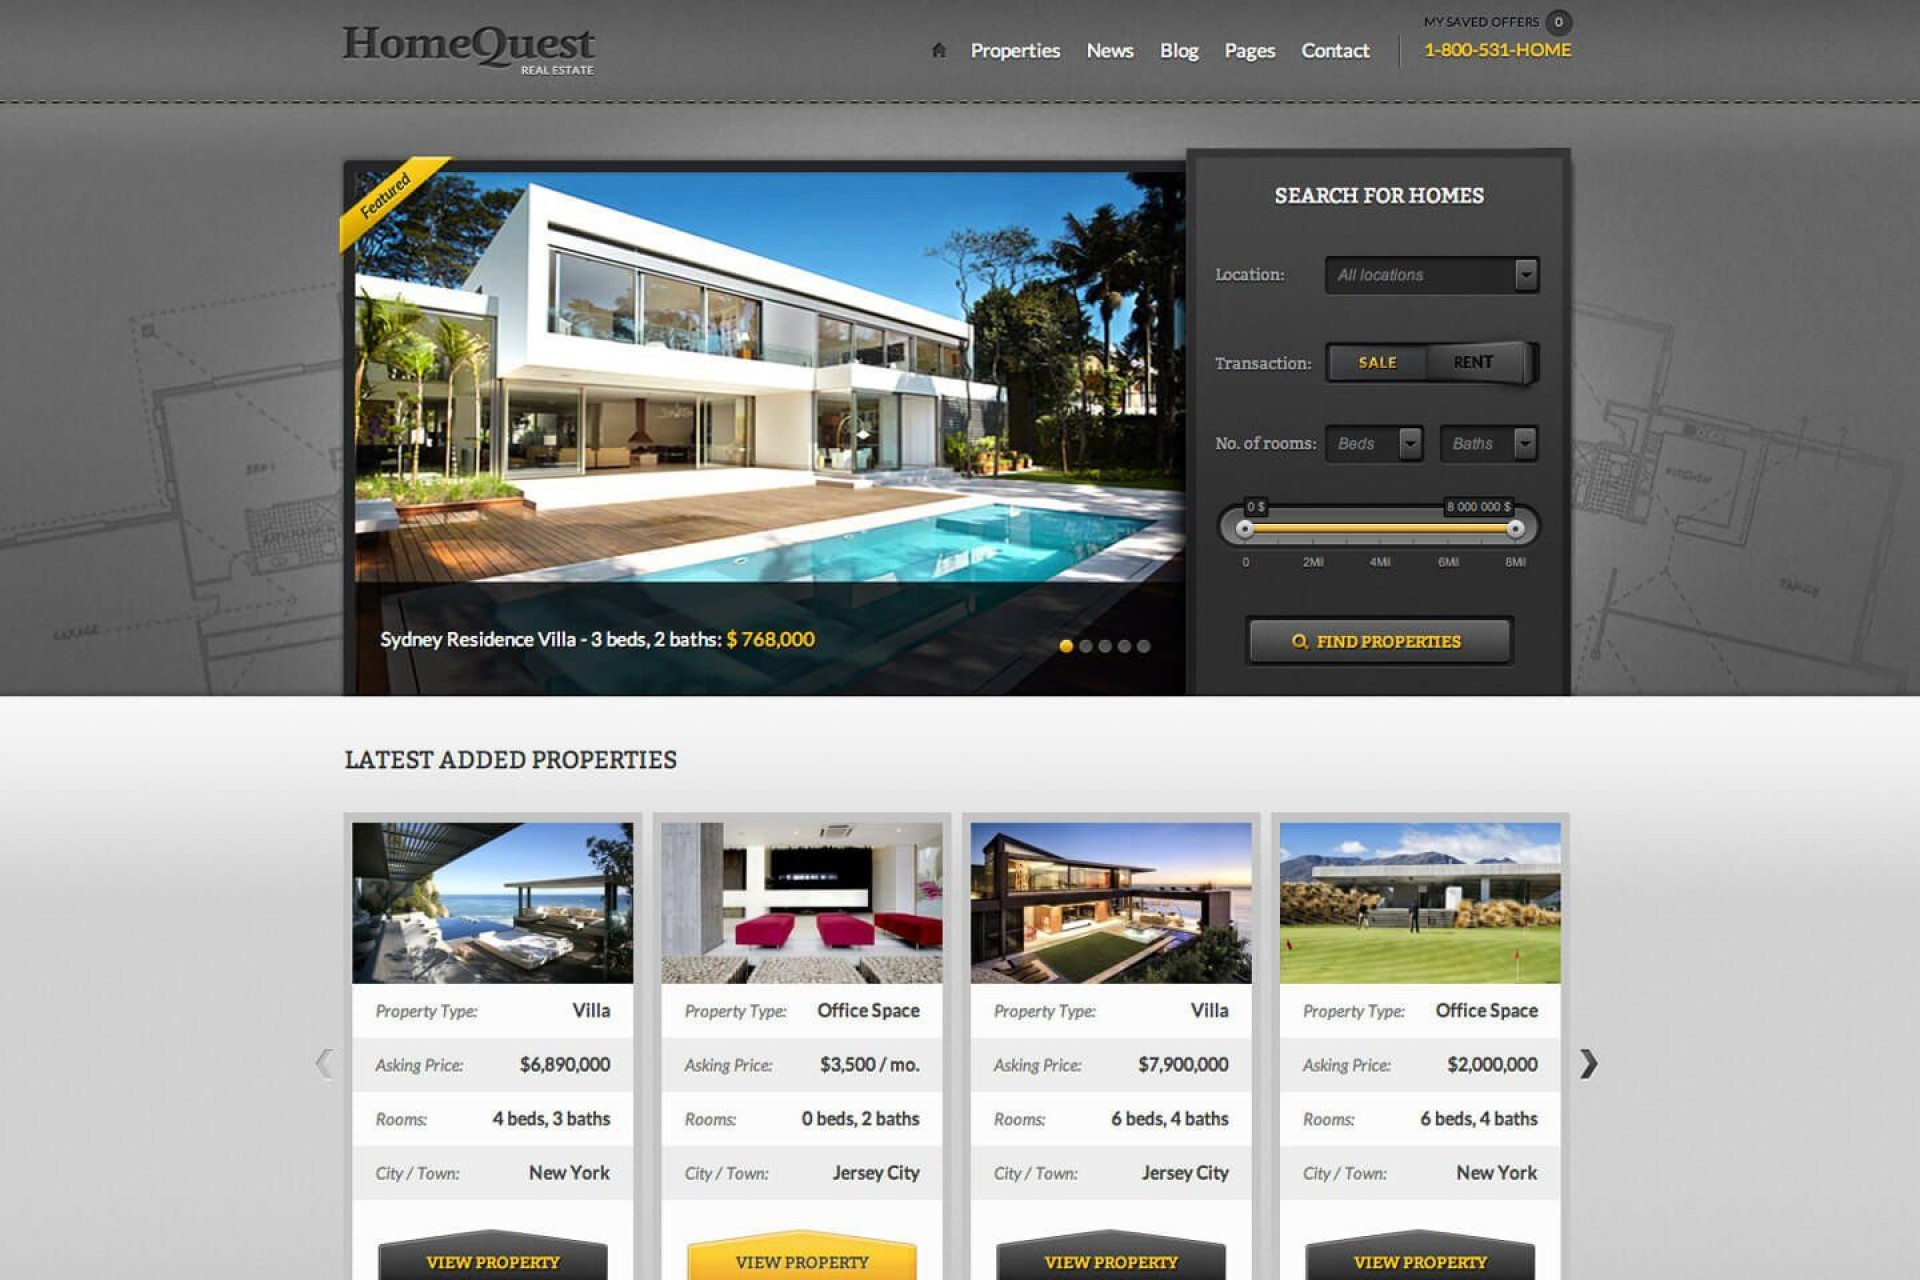 008 Impressive Real Estate Template Wordpres High Def  Homepres - Theme Free Download Realtyspace1920